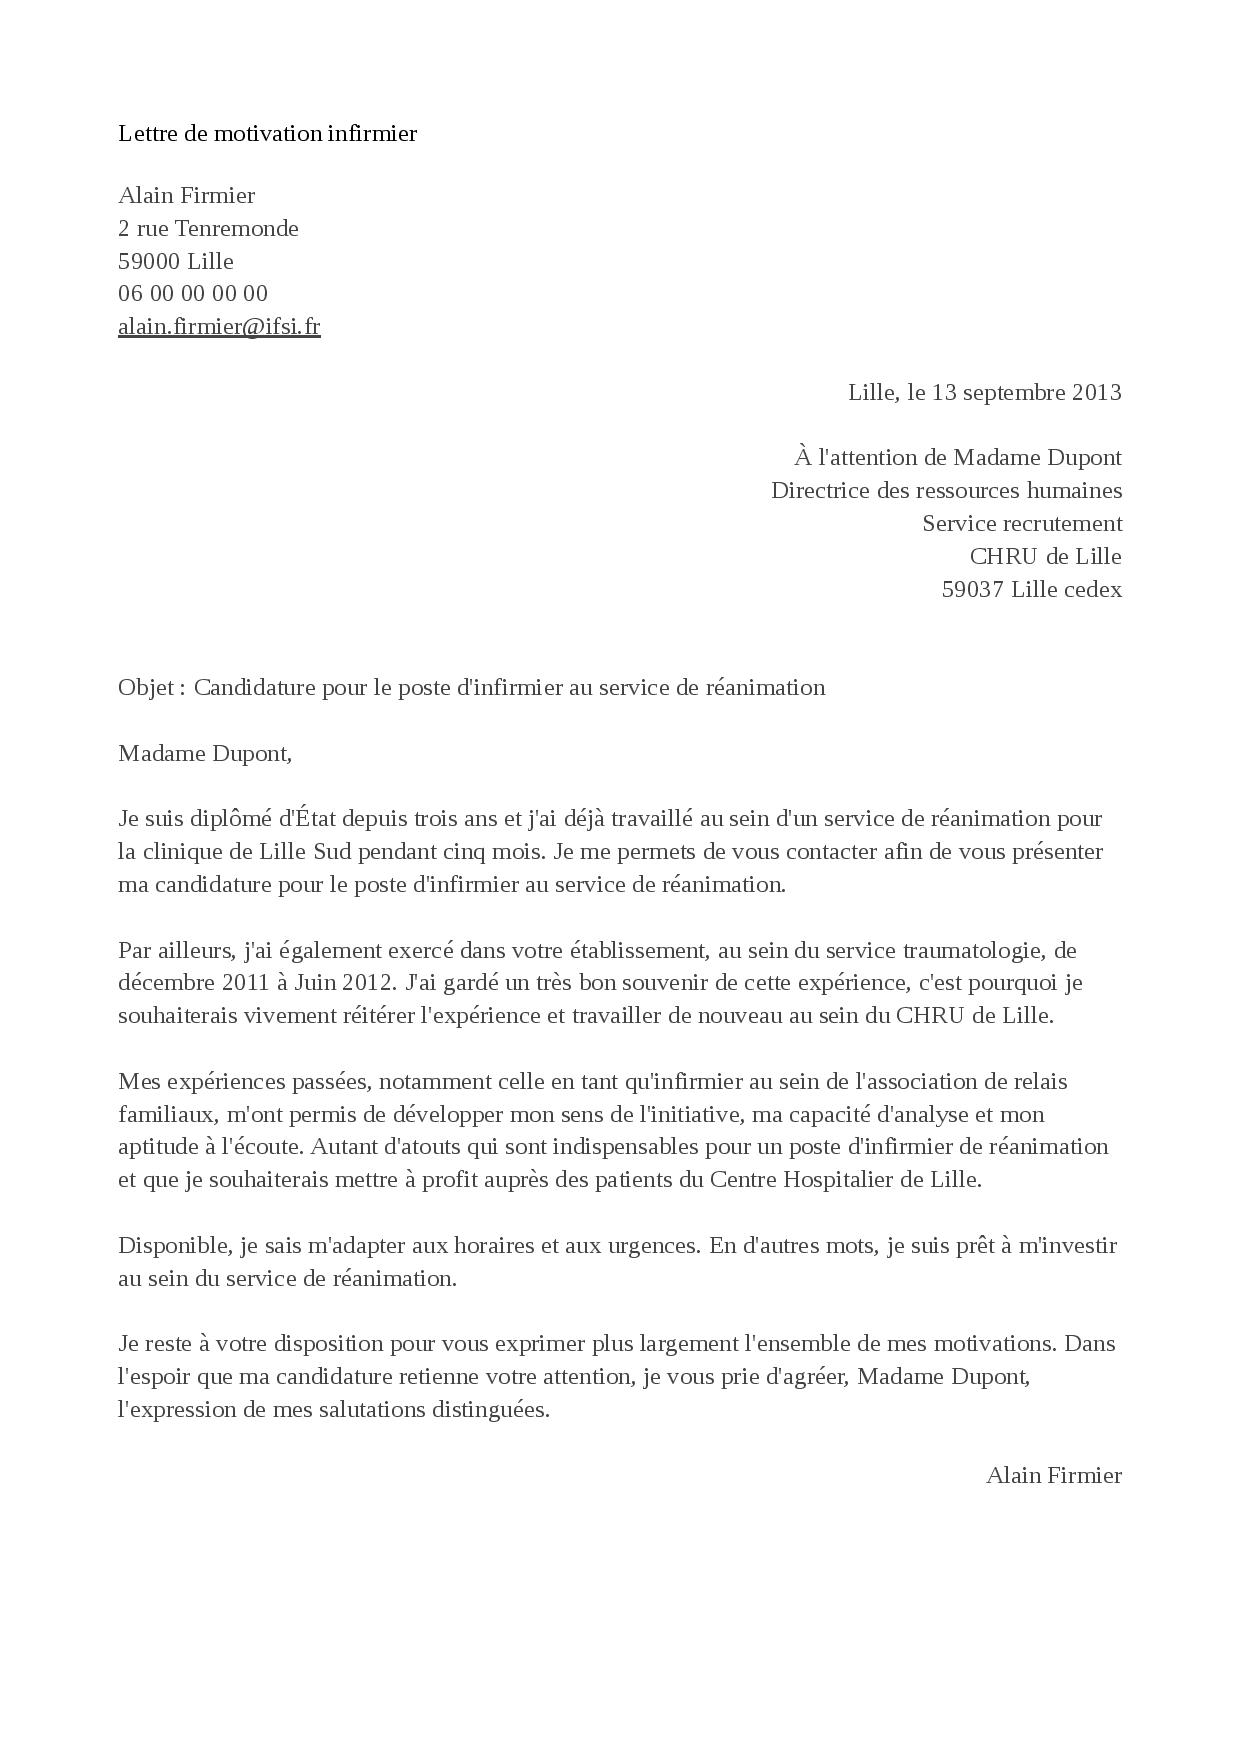 exemple de lettre de motivation infirmier